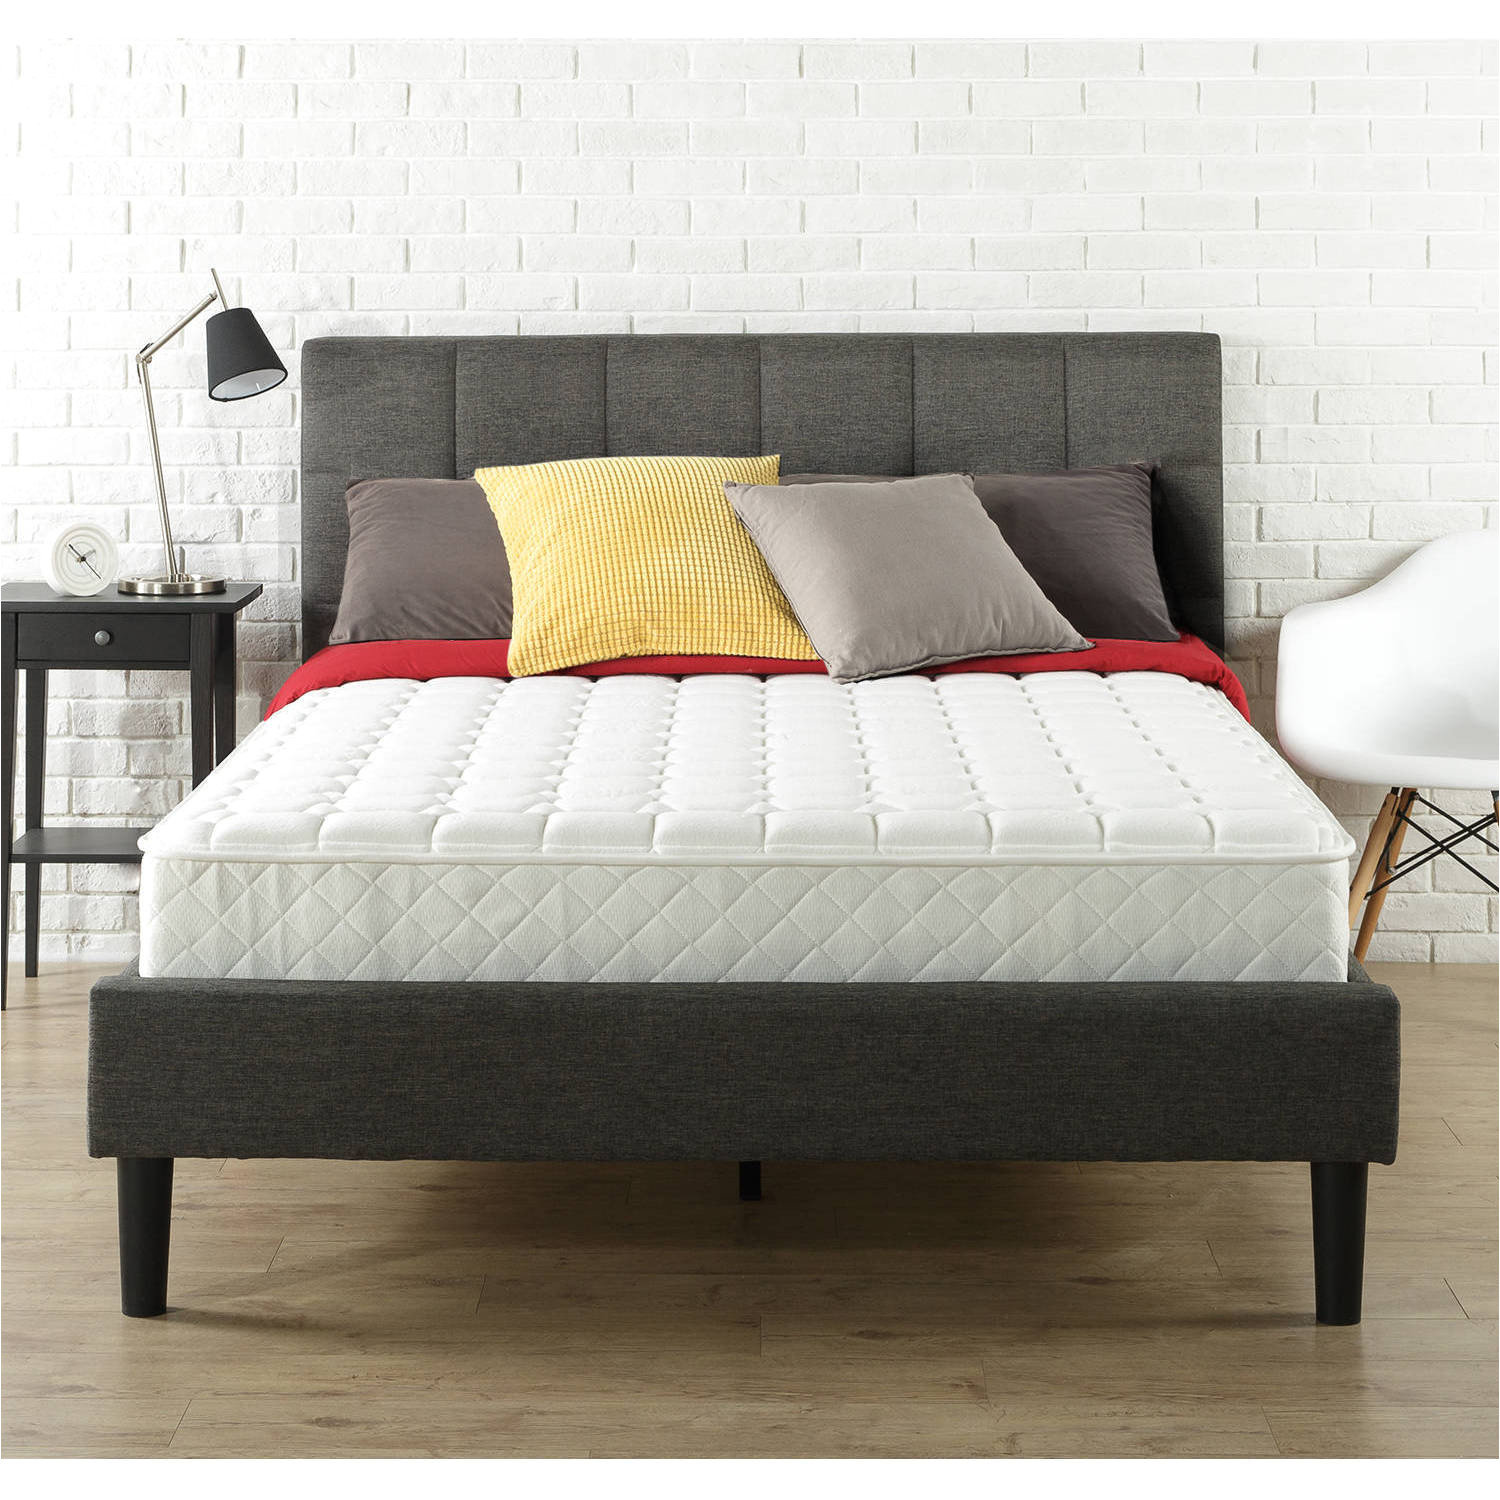 queen mattress and boxspring set dimensions of queen size bed